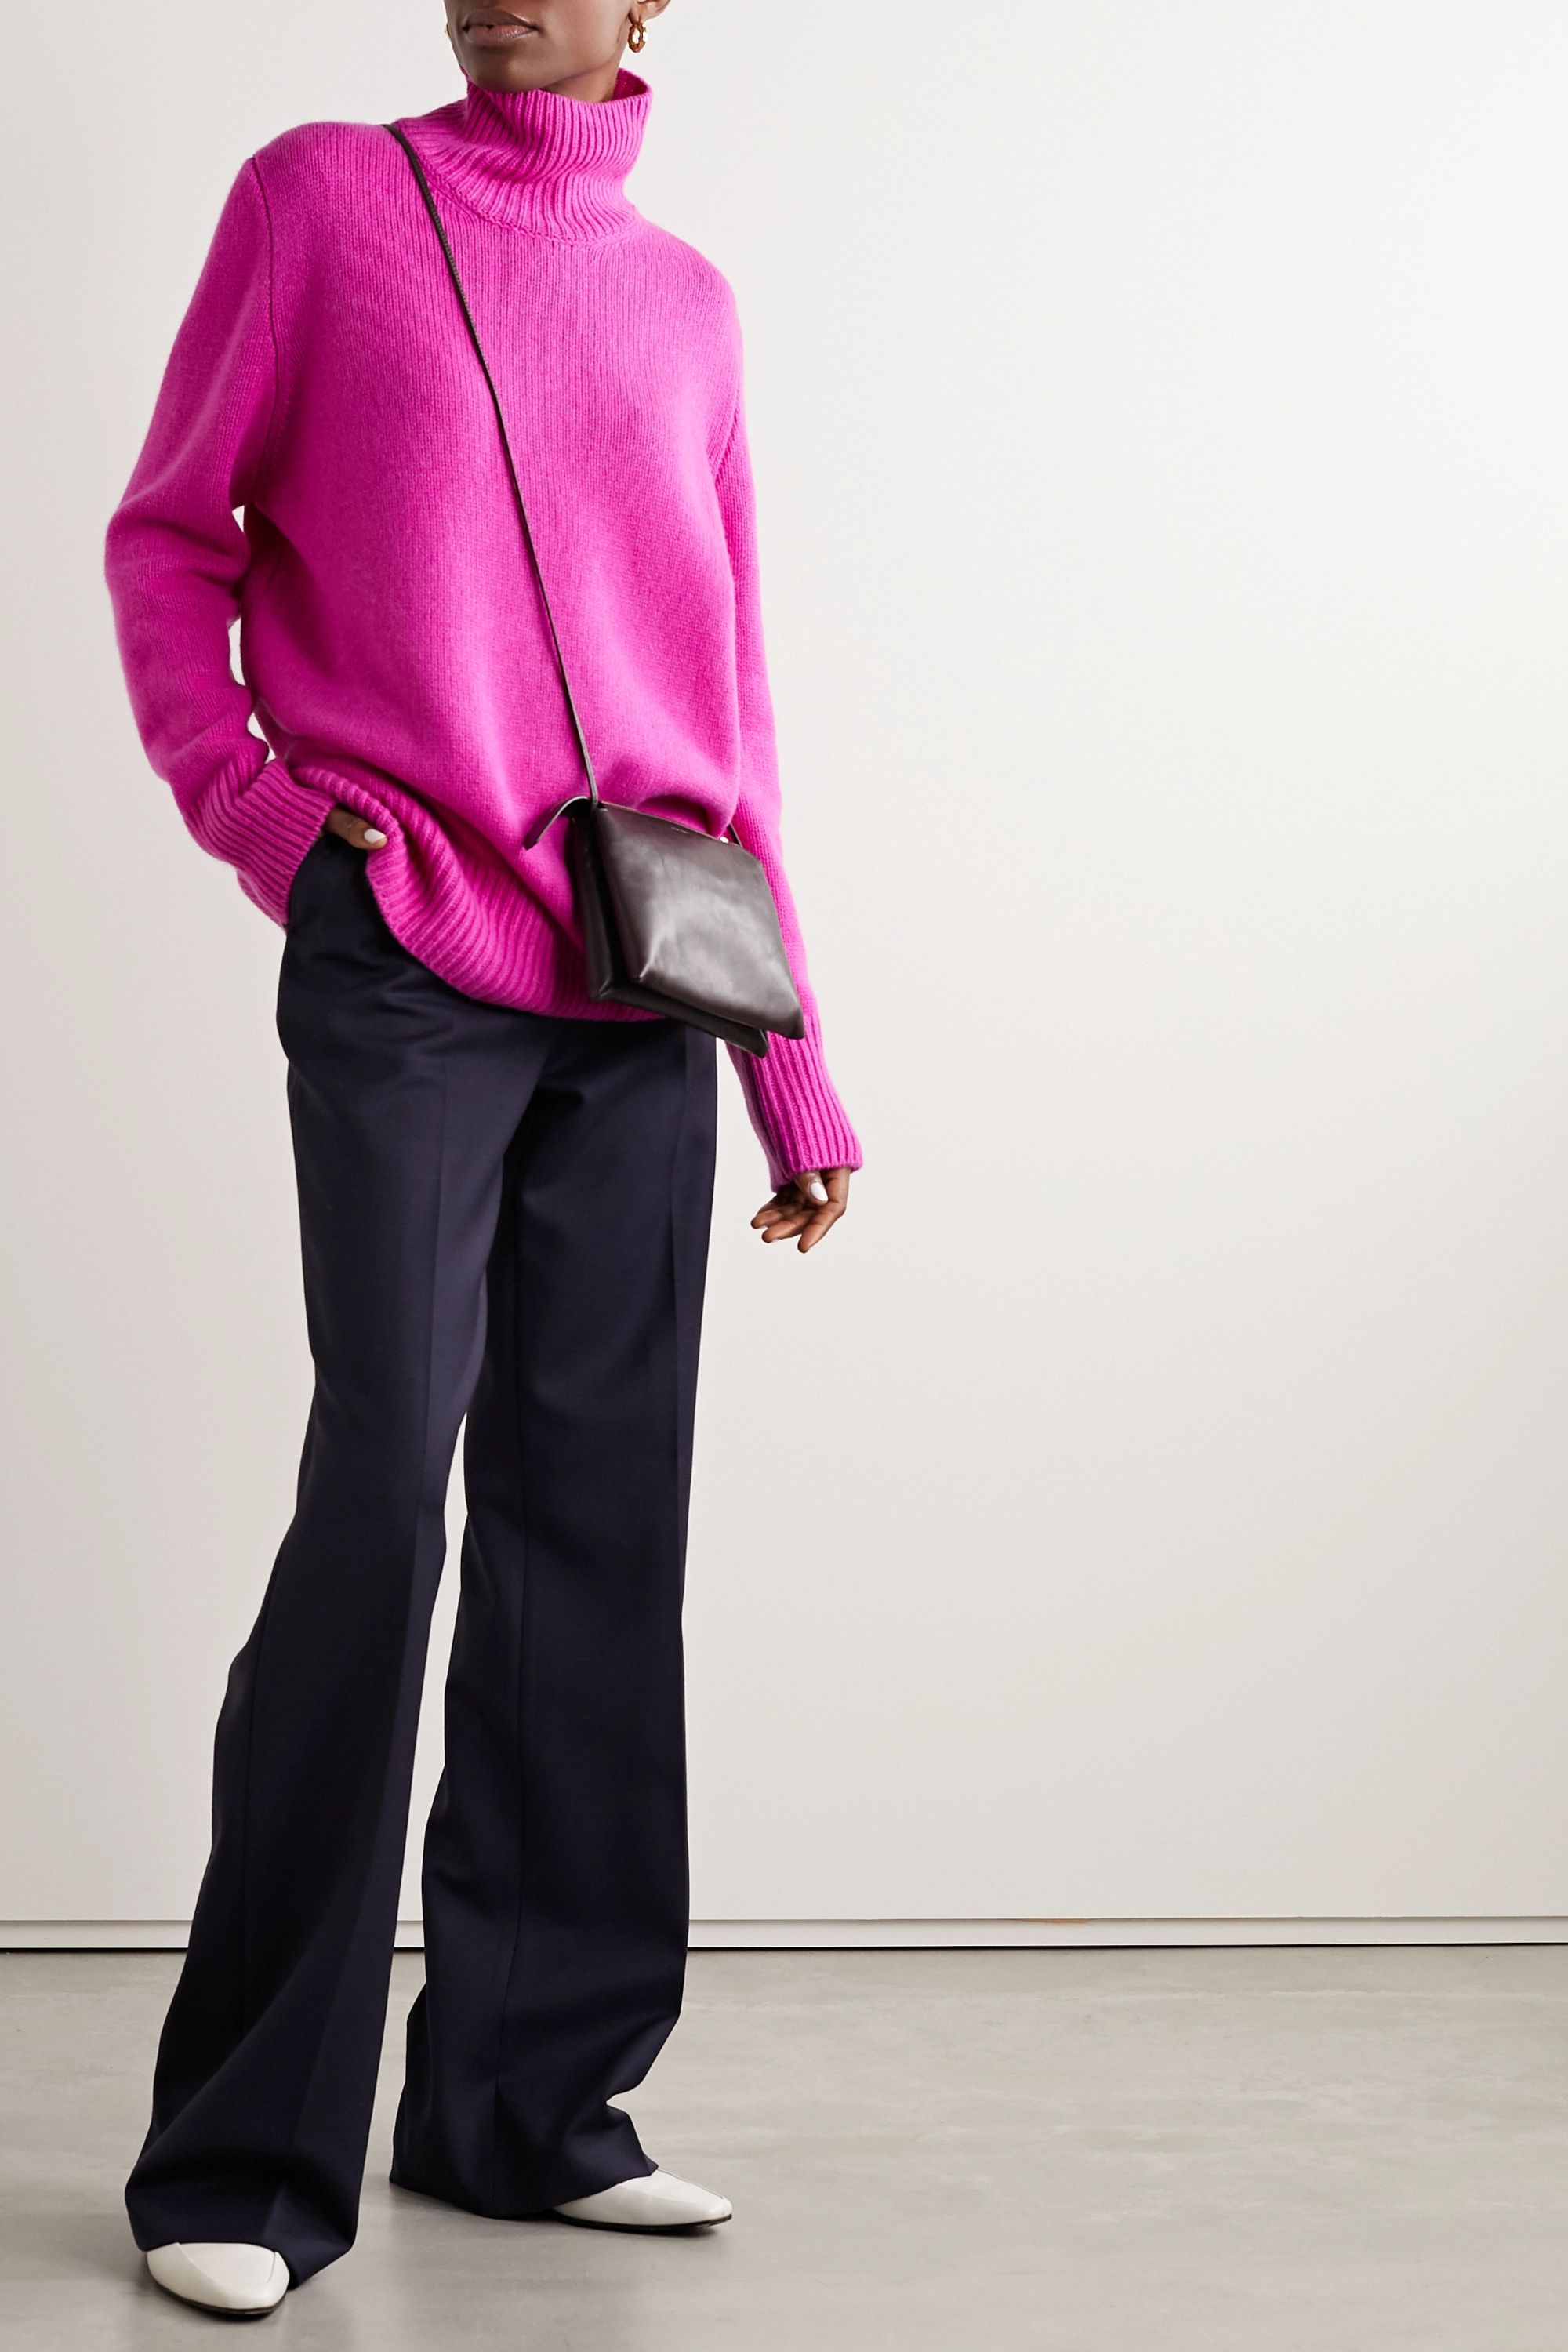 The Row Sadel cashmere turtleneck sweater